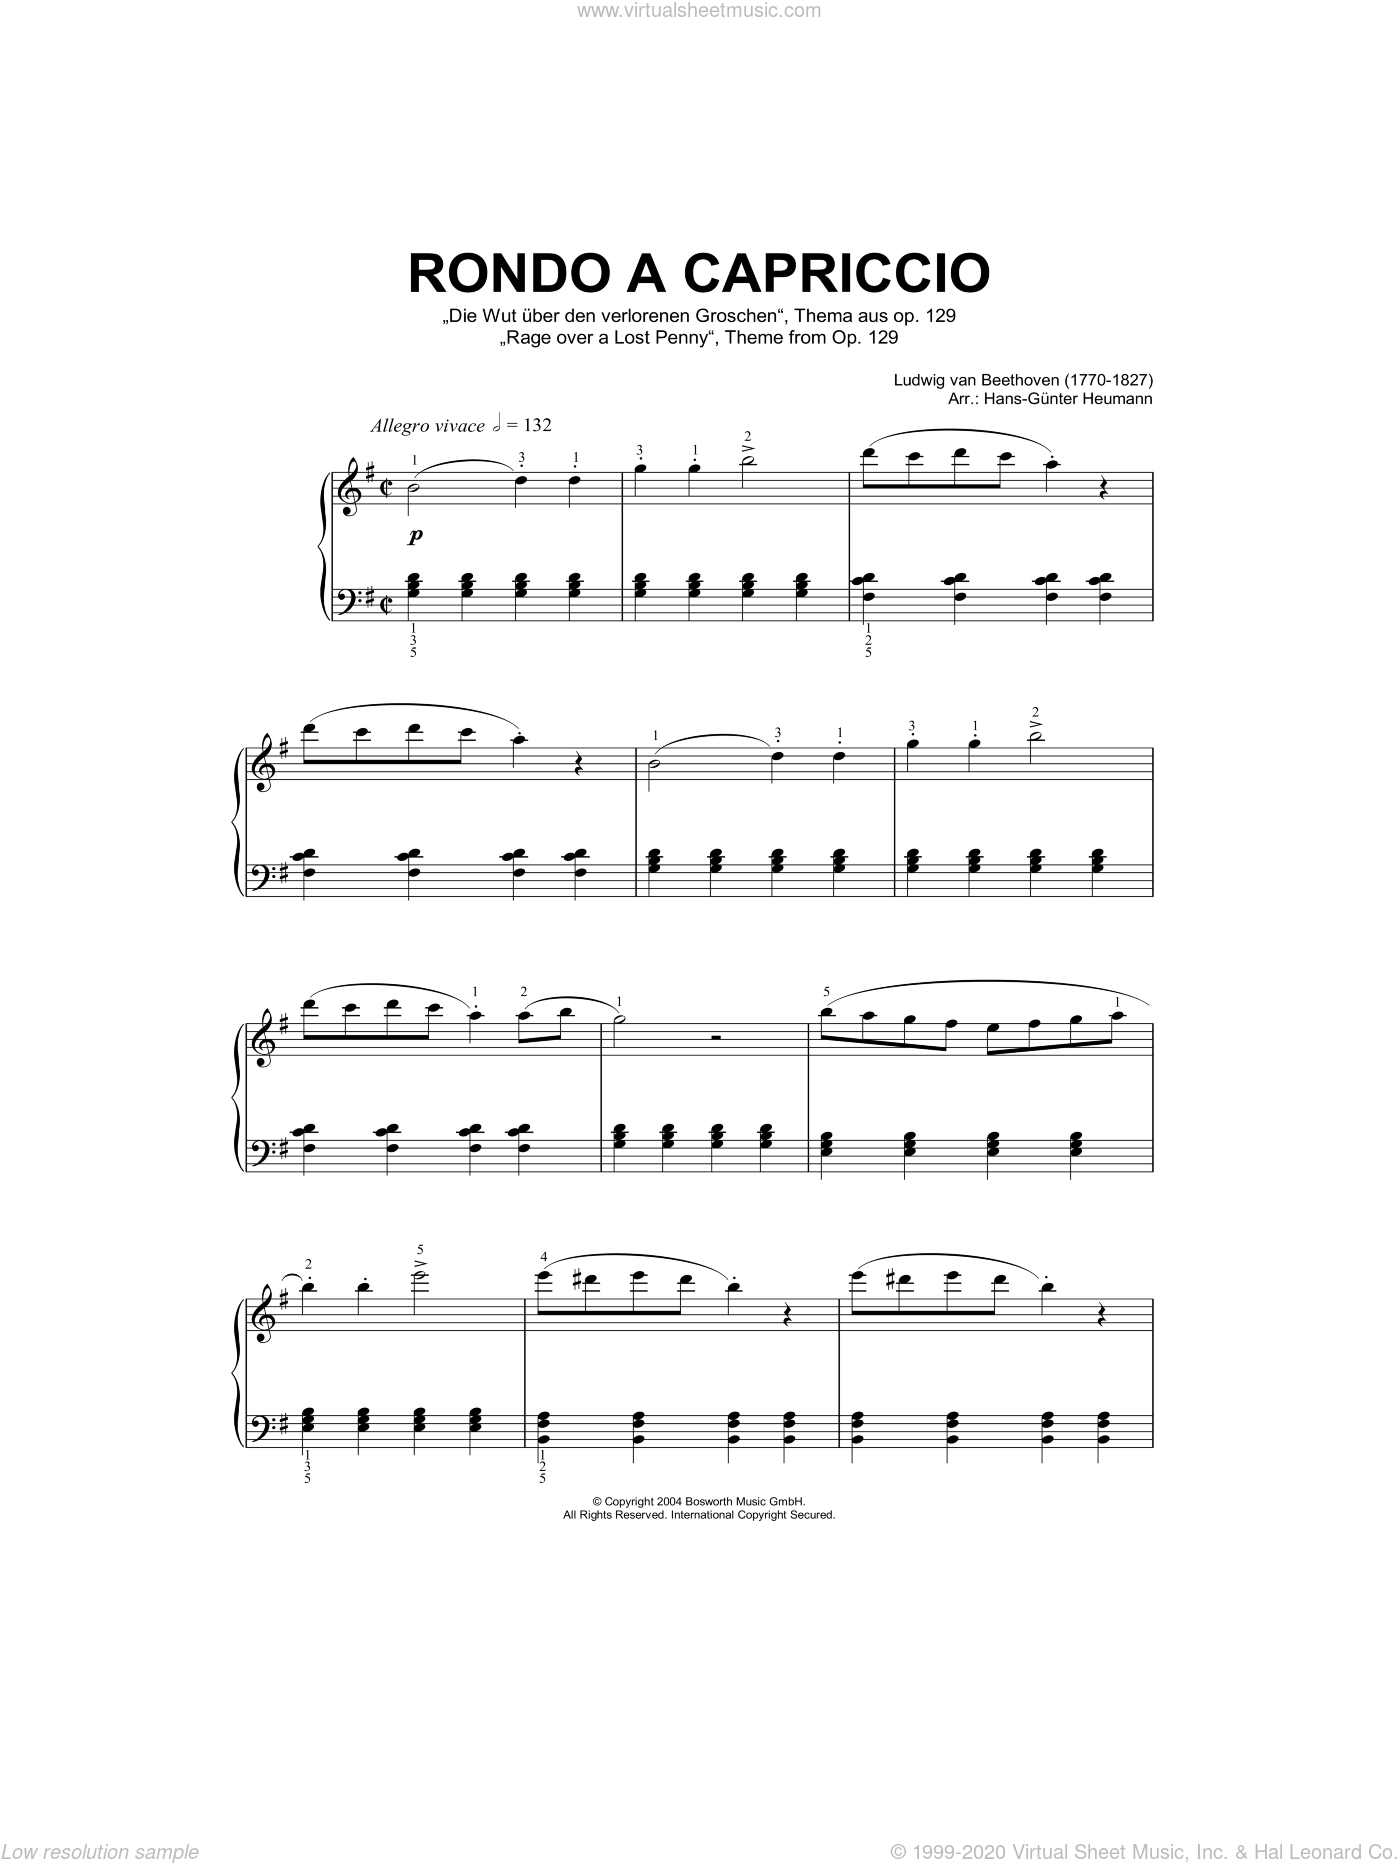 Rondo A Capriccio (Rage Over A Lost Penny), Theme from Op.129 sheet music for piano solo by Ludwig van Beethoven and Hans-Gunter Heumann, classical score, intermediate